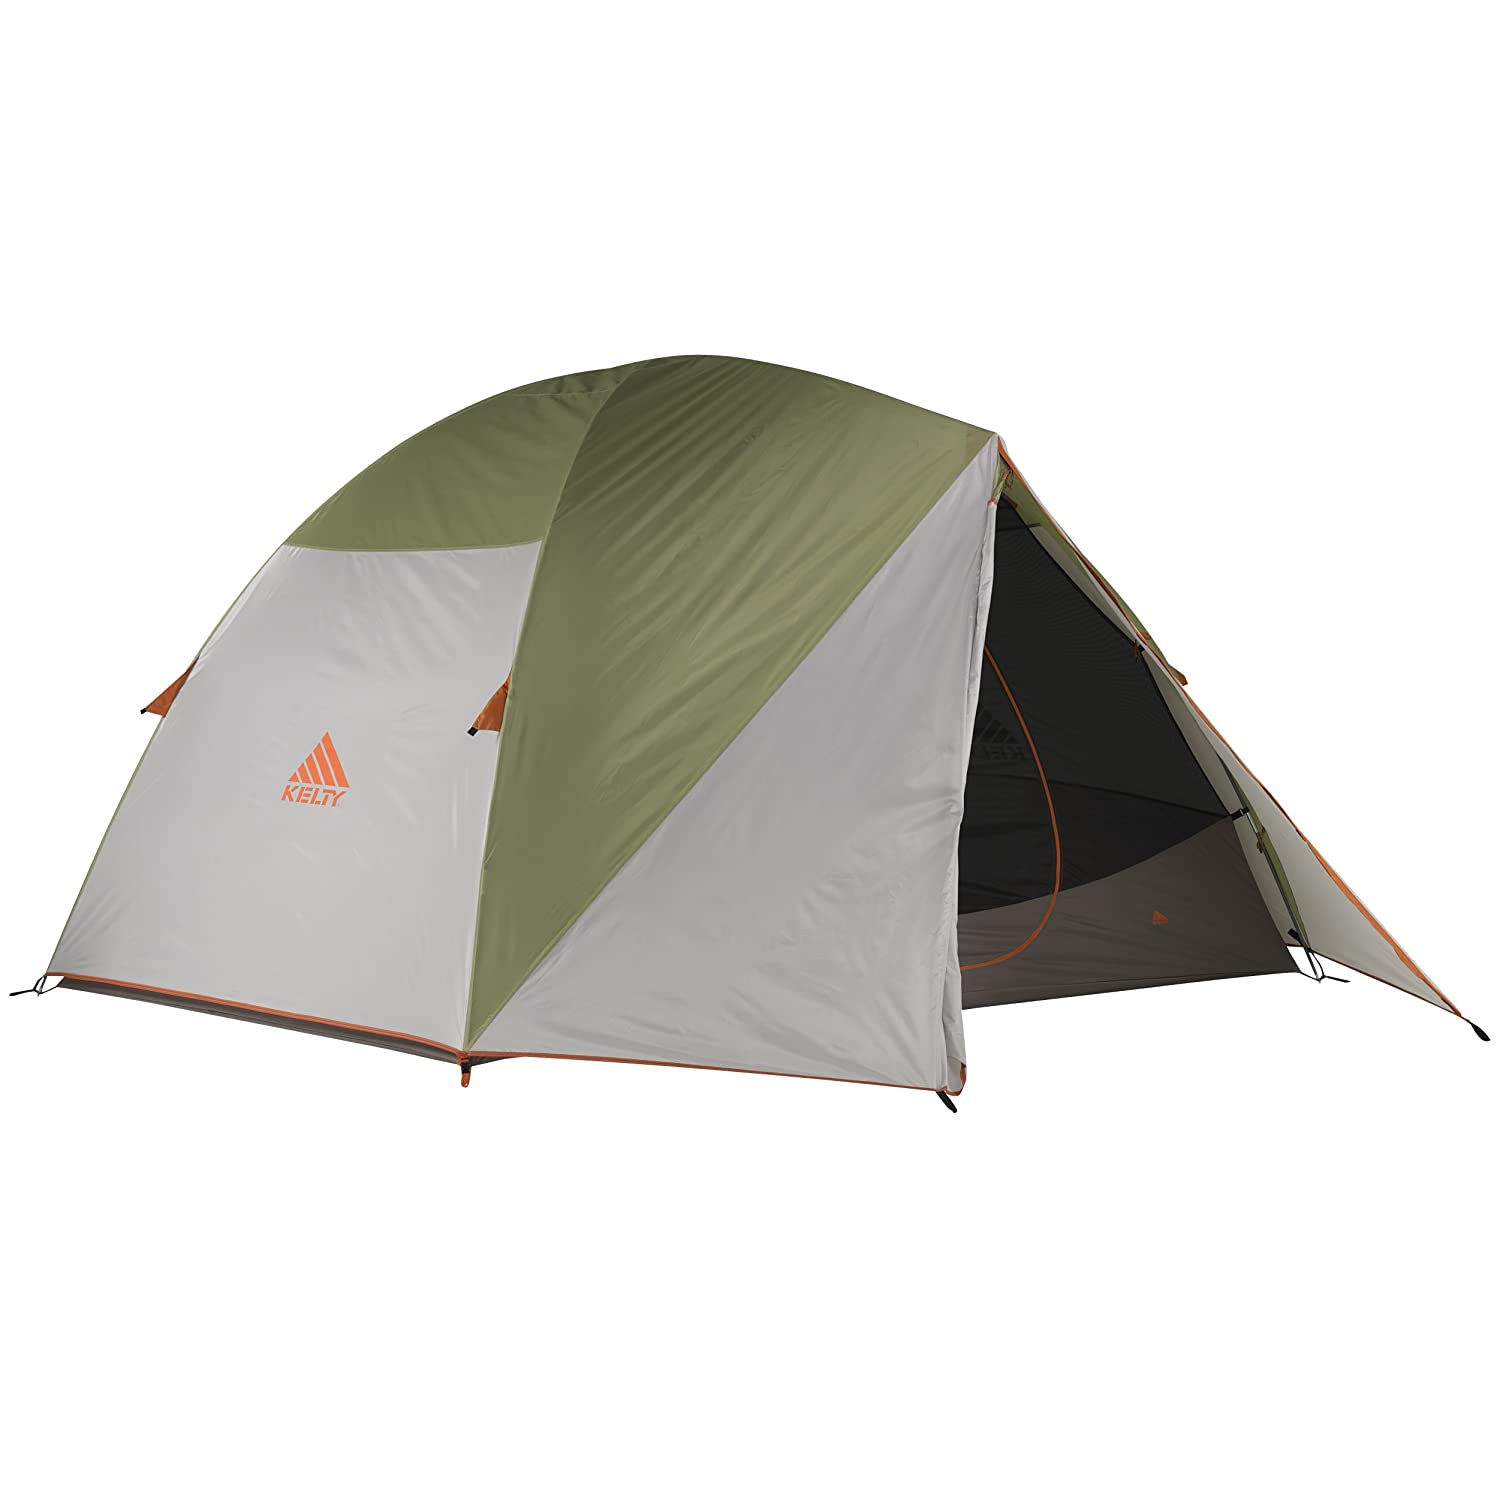 sc 1 st  Amazon.com & Amazon.com : Kelty Acadia 6 Tent : Family Tents : Sports u0026 Outdoors